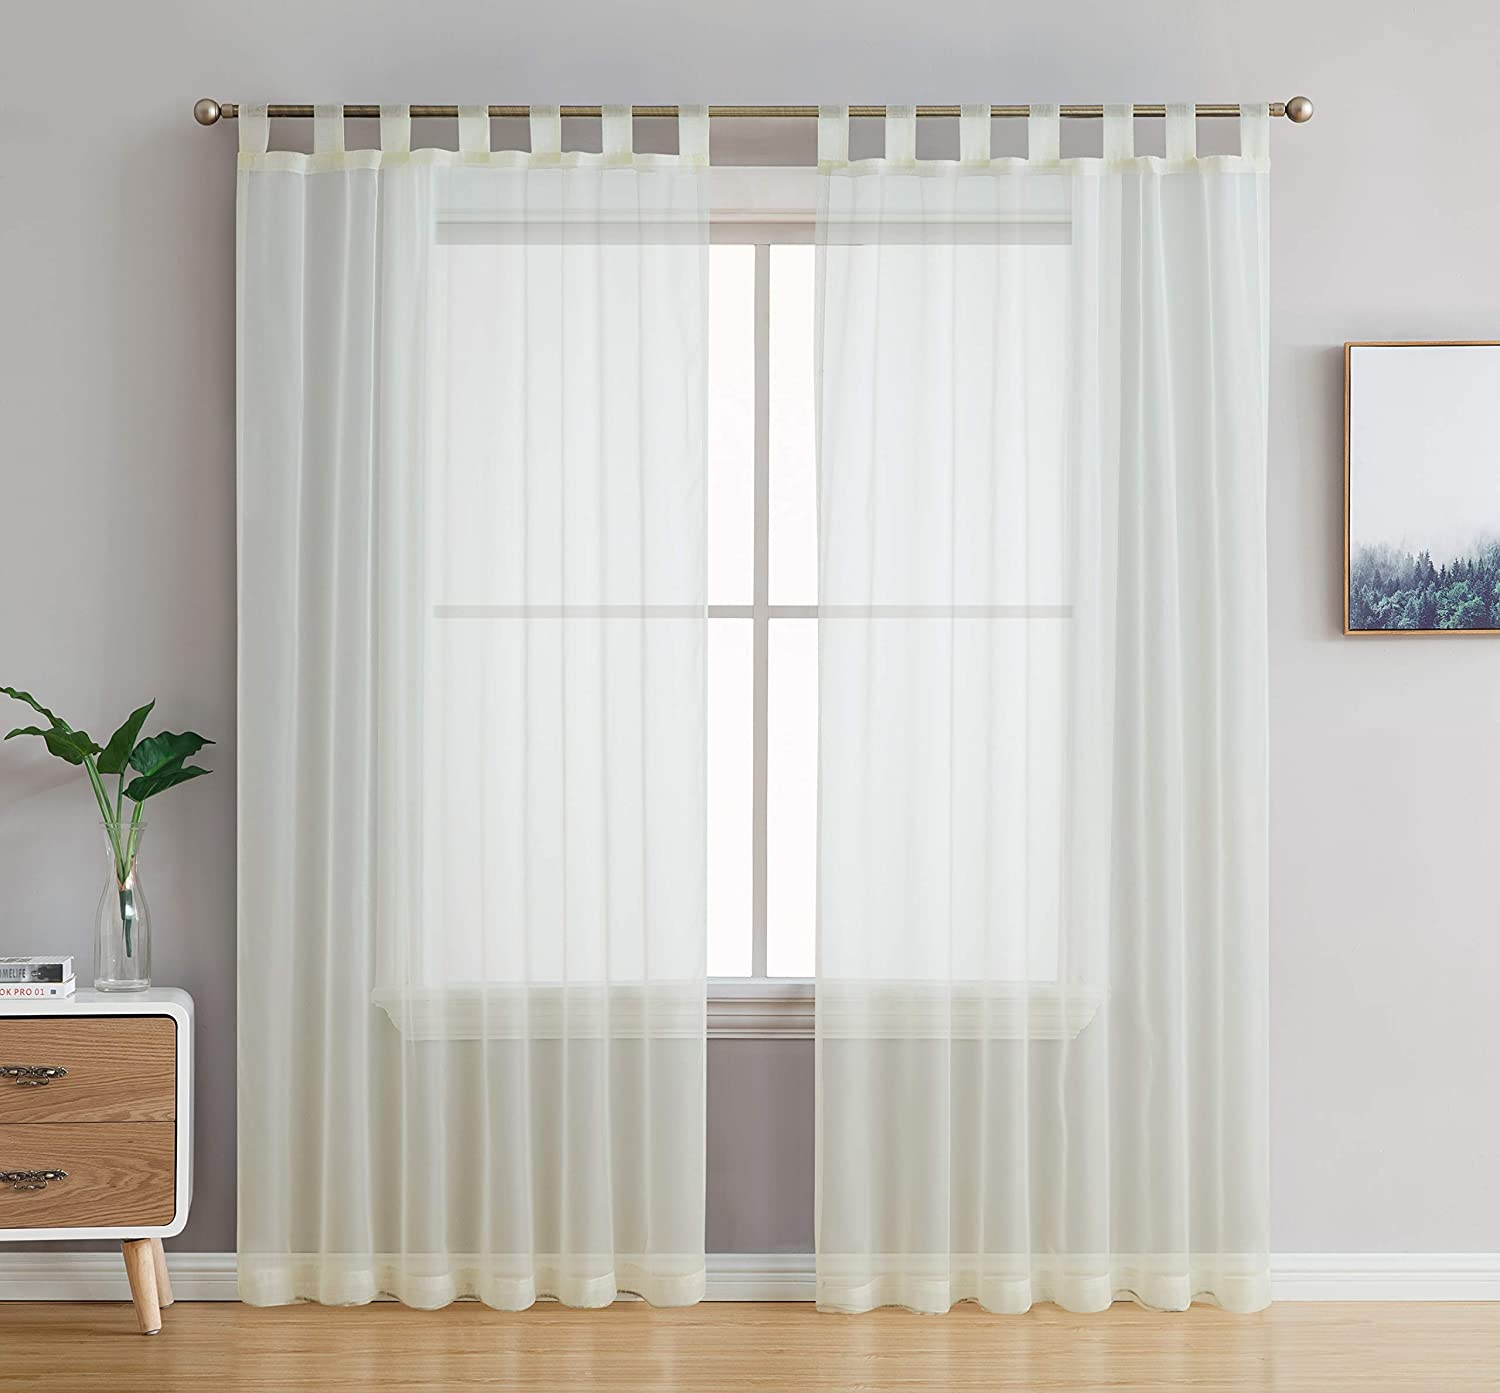 HLC.ME Ivory Tab Top 54 inch x 63 inch Long Window Curtain Sheer Voile Panels for Living Room & Bedroom, Set of 2